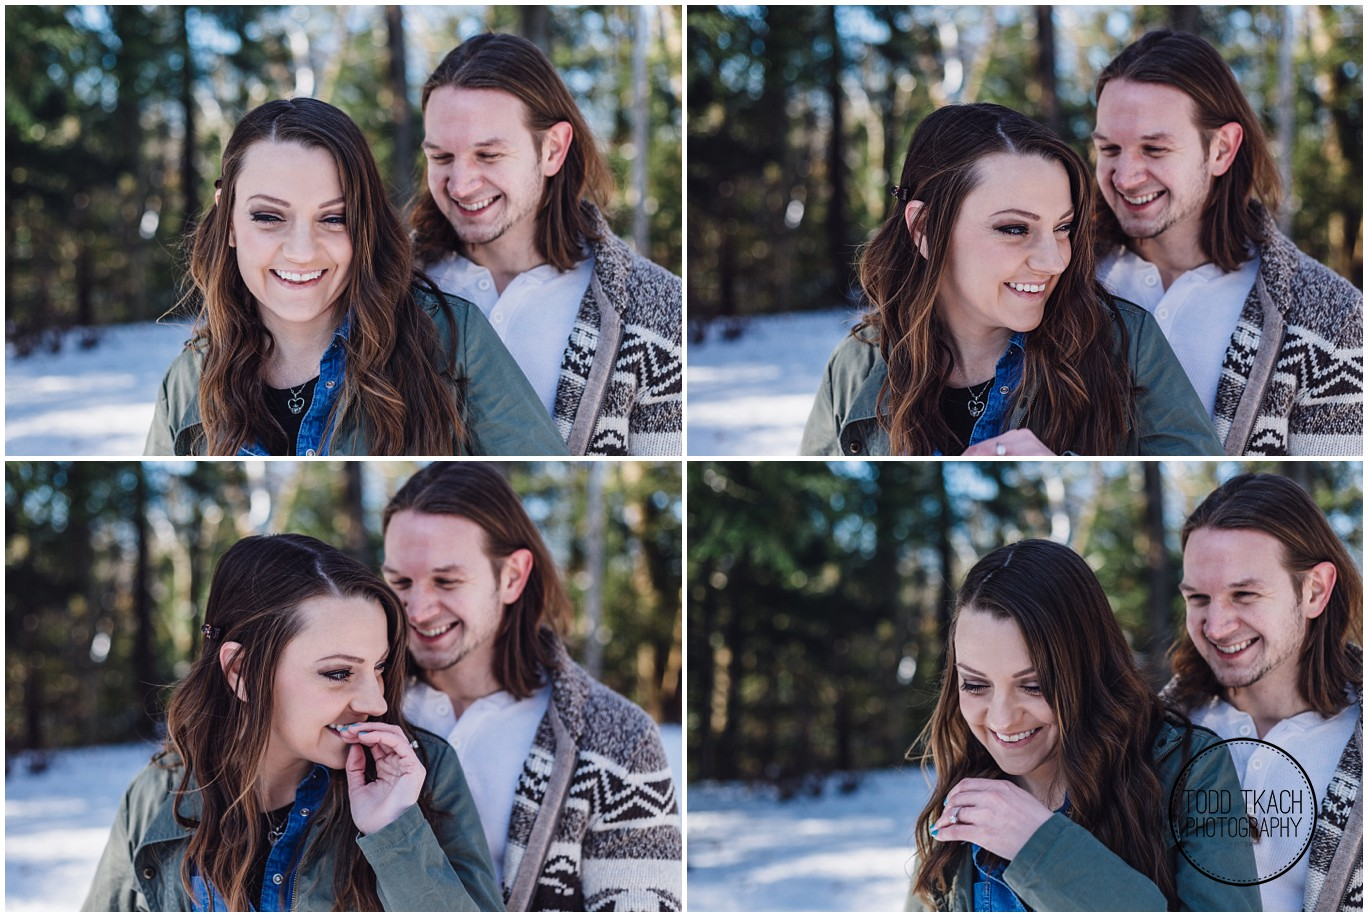 Meggan & Jimi Laughter Portrait Collage - McConnells Mill Engagement